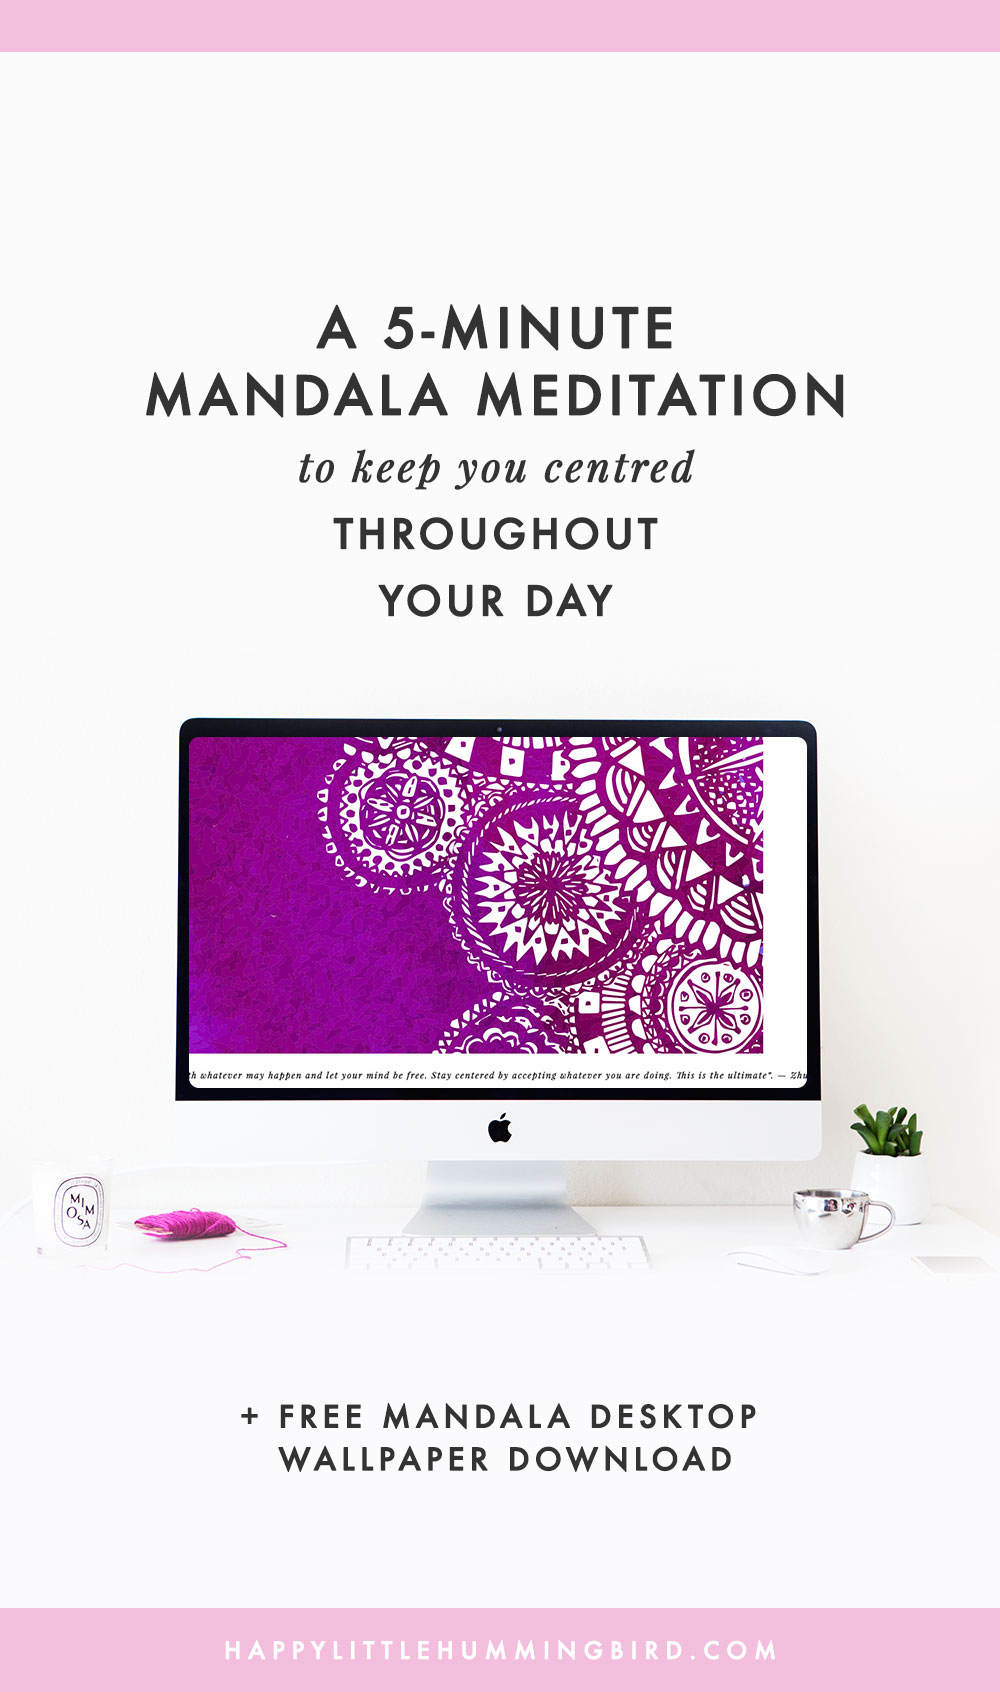 Having a bad day and need a breather? Follow this 5-minute meditation (with mandala desktop wallpaper to use as a tool during your meditation) to help you reflect and find your way back to centre.